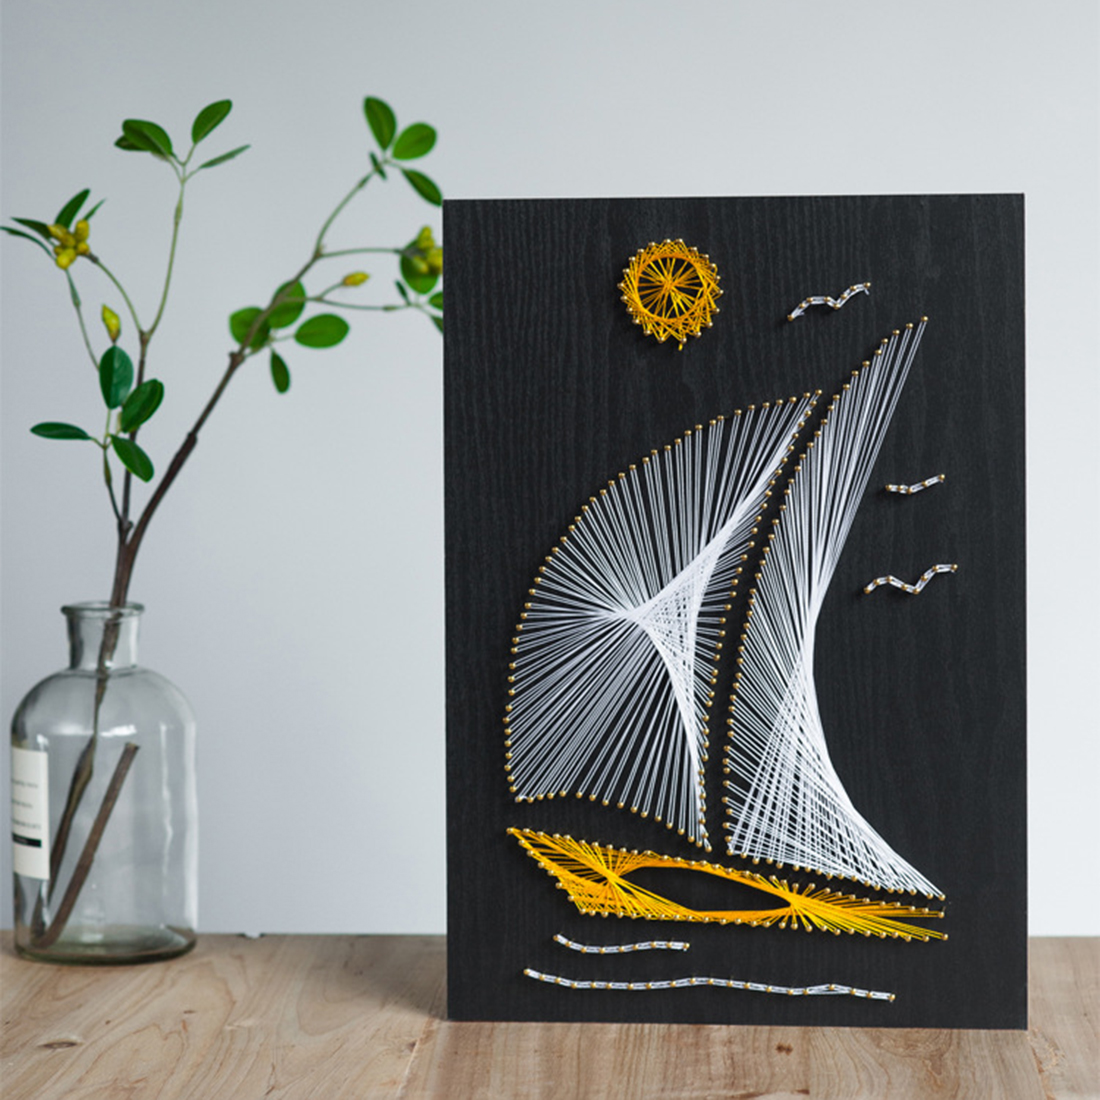 DIY Nail String Art Kit Plain Sailing Winding Lines Drawing Painting Art Kit With Frame For Kids Adults Beginners Home Decor